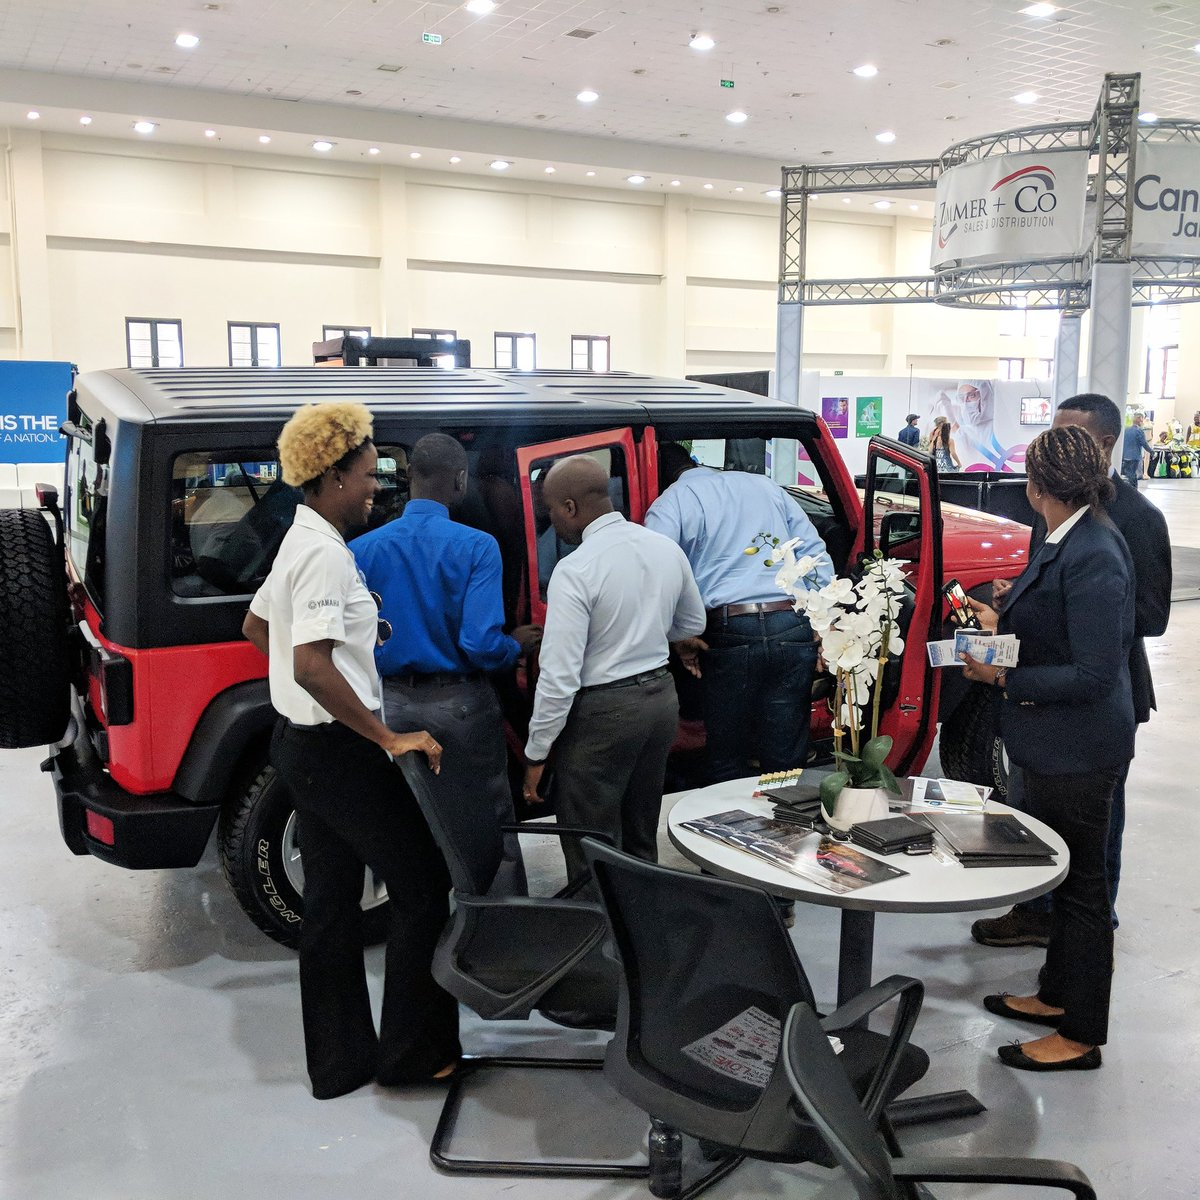 Mobayconferencecentre Hashtag On Twitter Jeep Wrangler Expo Wranglerunlimited Kigjamaica Canexjamaica Canex Business Conference Toppickpic Hlp5ndfend